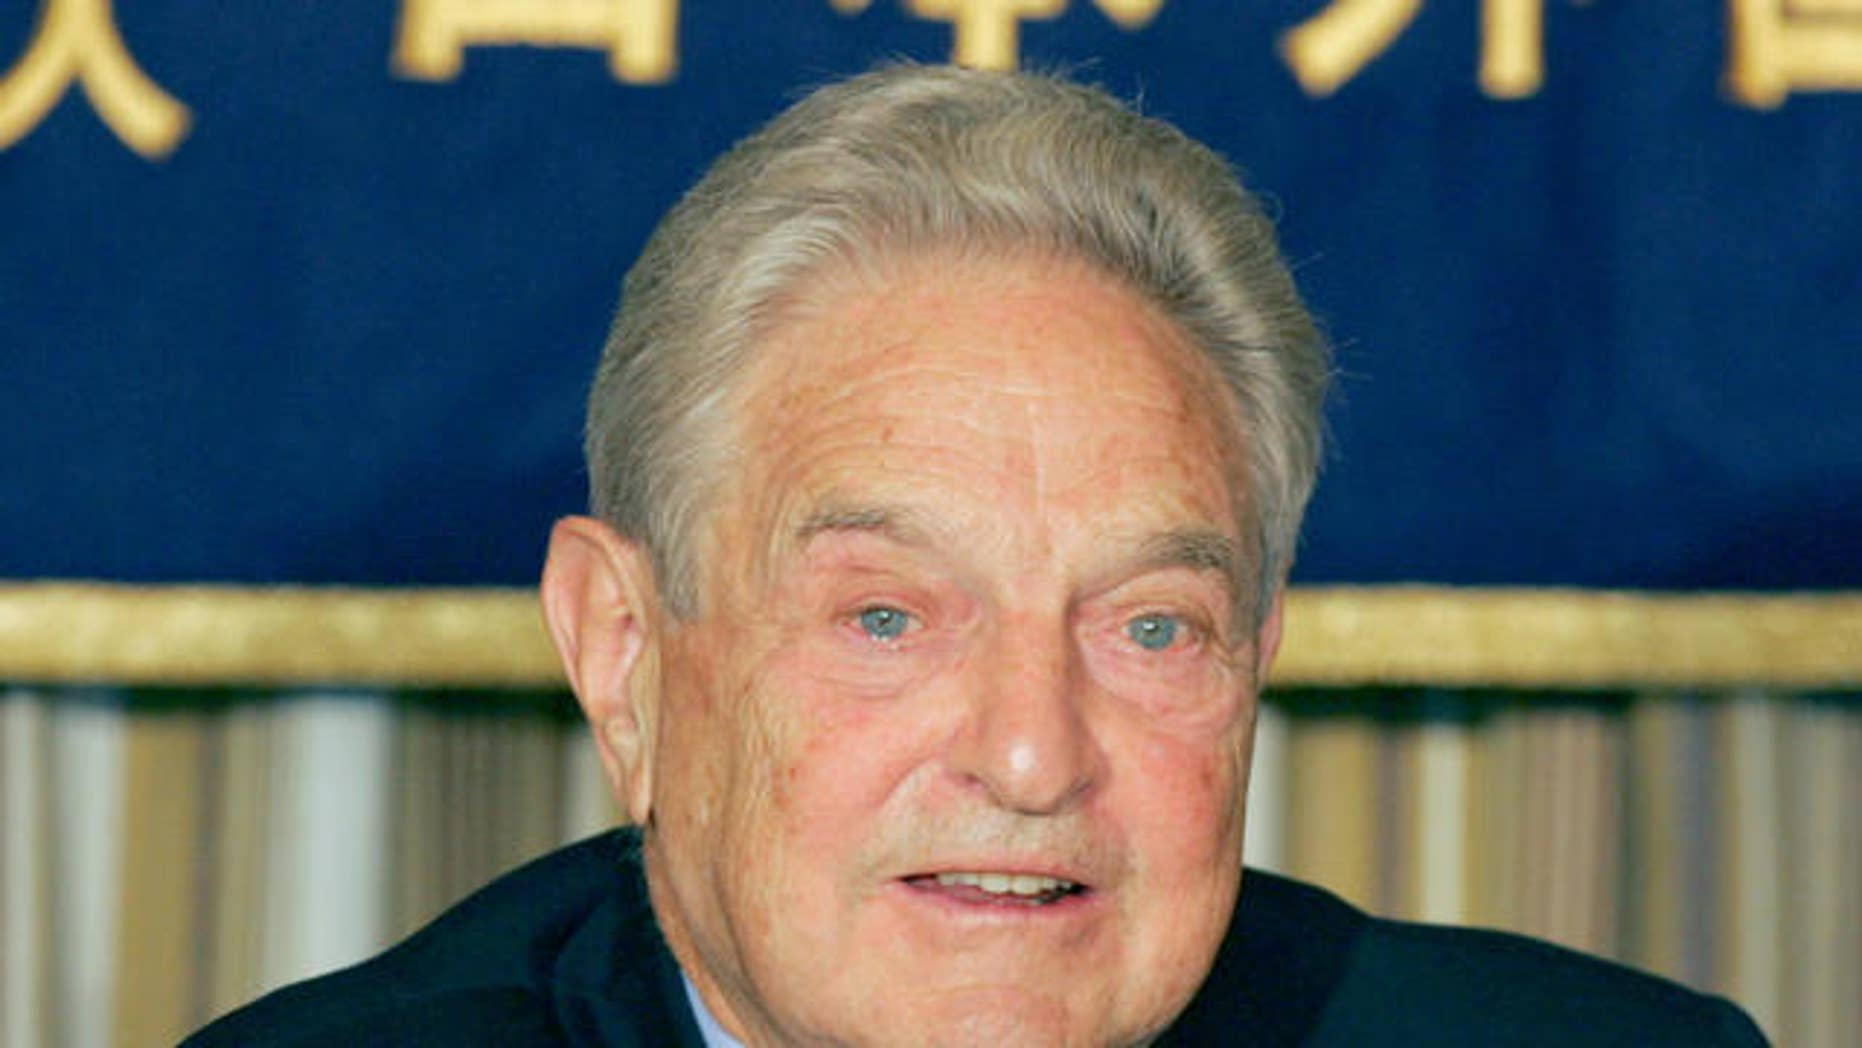 "Billionaire financier and philanthropist George Soros speaks to reporters at the Foreign Correspondents' Club of Japan in Tokyo Monday, Oct. 16, 2006. Soros said that China should allow its currency to appreciate in order to maintain economic stability. Shown at right on the table is a copy of the Japanese version of his latest book ""The Age of Fallibility."" (AP Photo/Koji Sasahara)"